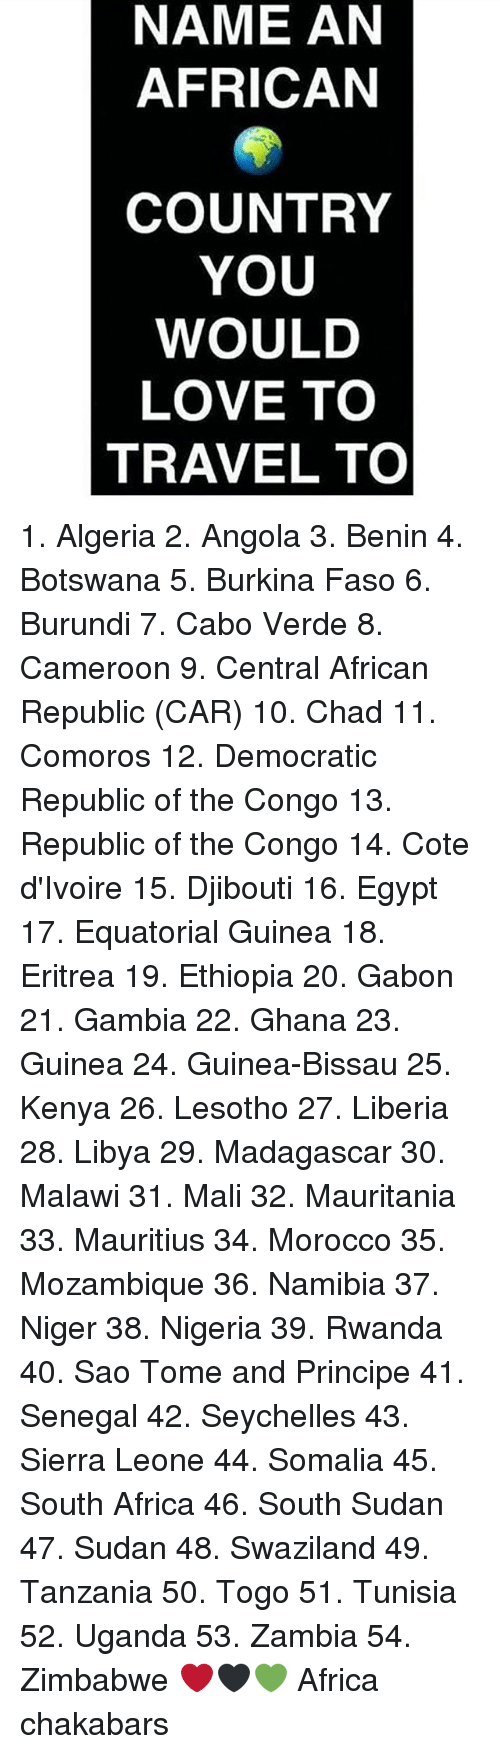 liberia: NAME AN  AFRICAN  COUNTRY  YOU  WOULD  LOVE TO  TRAVEL TO 1. Algeria 2. Angola 3. Benin 4. Botswana 5. Burkina Faso 6. Burundi 7. Cabo Verde 8. Cameroon 9. Central African Republic (CAR) 10. Chad 11. Comoros 12. Democratic Republic of the Congo 13. Republic of the Congo 14. Cote d'Ivoire 15. Djibouti 16. Egypt 17. Equatorial Guinea 18. Eritrea 19. Ethiopia 20. Gabon 21. Gambia 22. Ghana 23. Guinea 24. Guinea-Bissau 25. Kenya 26. Lesotho 27. Liberia 28. Libya 29. Madagascar 30. Malawi 31. Mali 32. Mauritania 33. Mauritius 34. Morocco 35. Mozambique 36. Namibia 37. Niger 38. Nigeria 39. Rwanda 40. Sao Tome and Principe 41. Senegal 42. Seychelles 43. Sierra Leone 44. Somalia 45. South Africa 46. South Sudan 47. Sudan 48. Swaziland 49. Tanzania 50. Togo 51. Tunisia 52. Uganda 53. Zambia 54. Zimbabwe ❤🖤💚 Africa chakabars